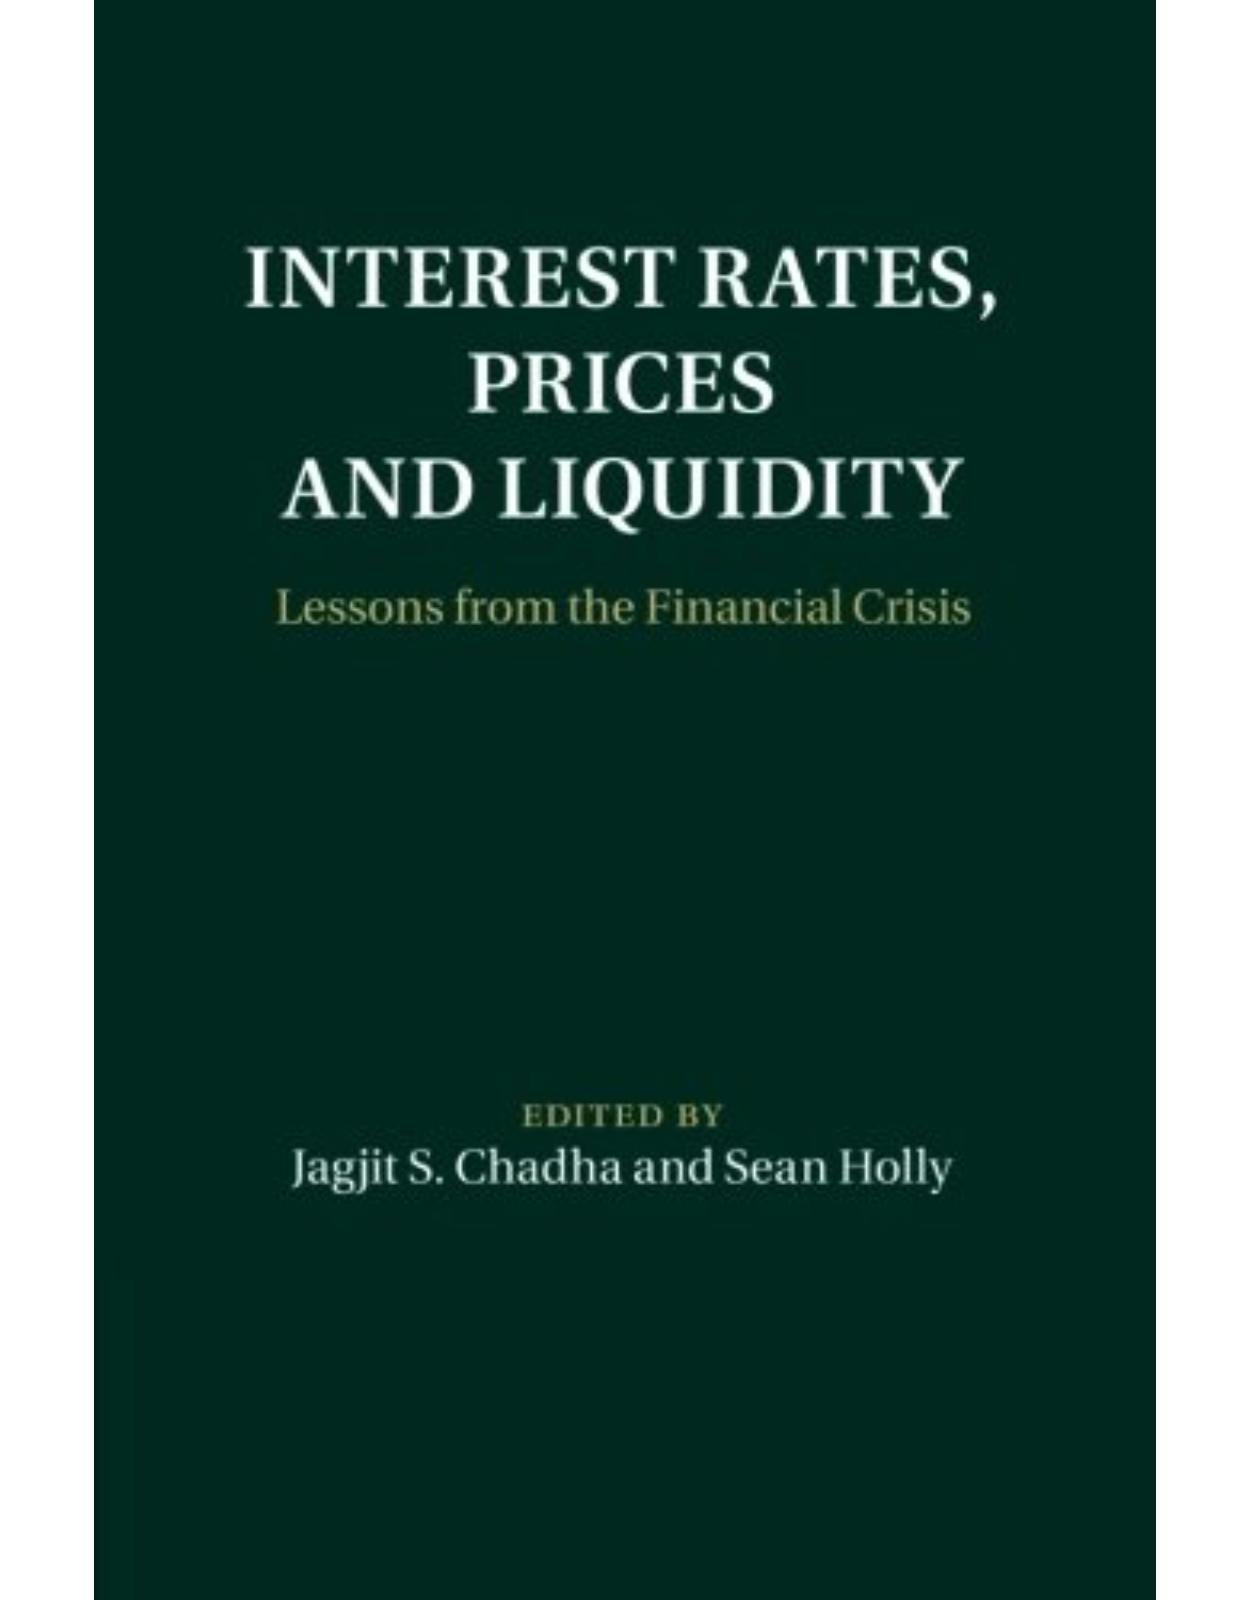 Interest Rates, Prices and Liquidity: Lessons from the Financial Crisis (Macroeconomic Policy Making)